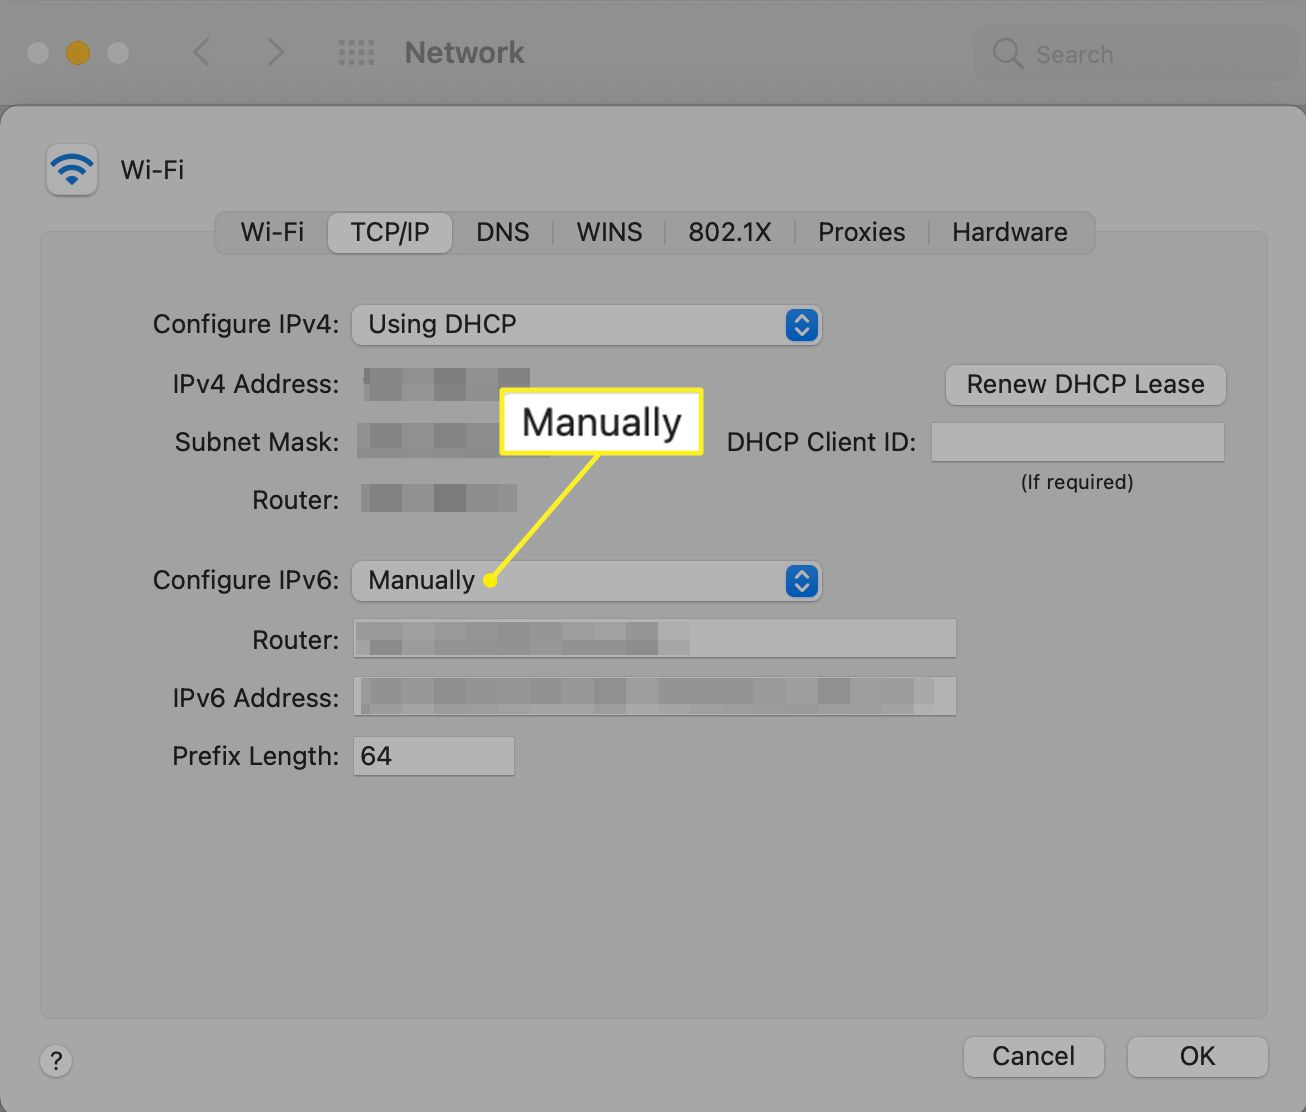 Manual configuration selection in Mac Network preferences